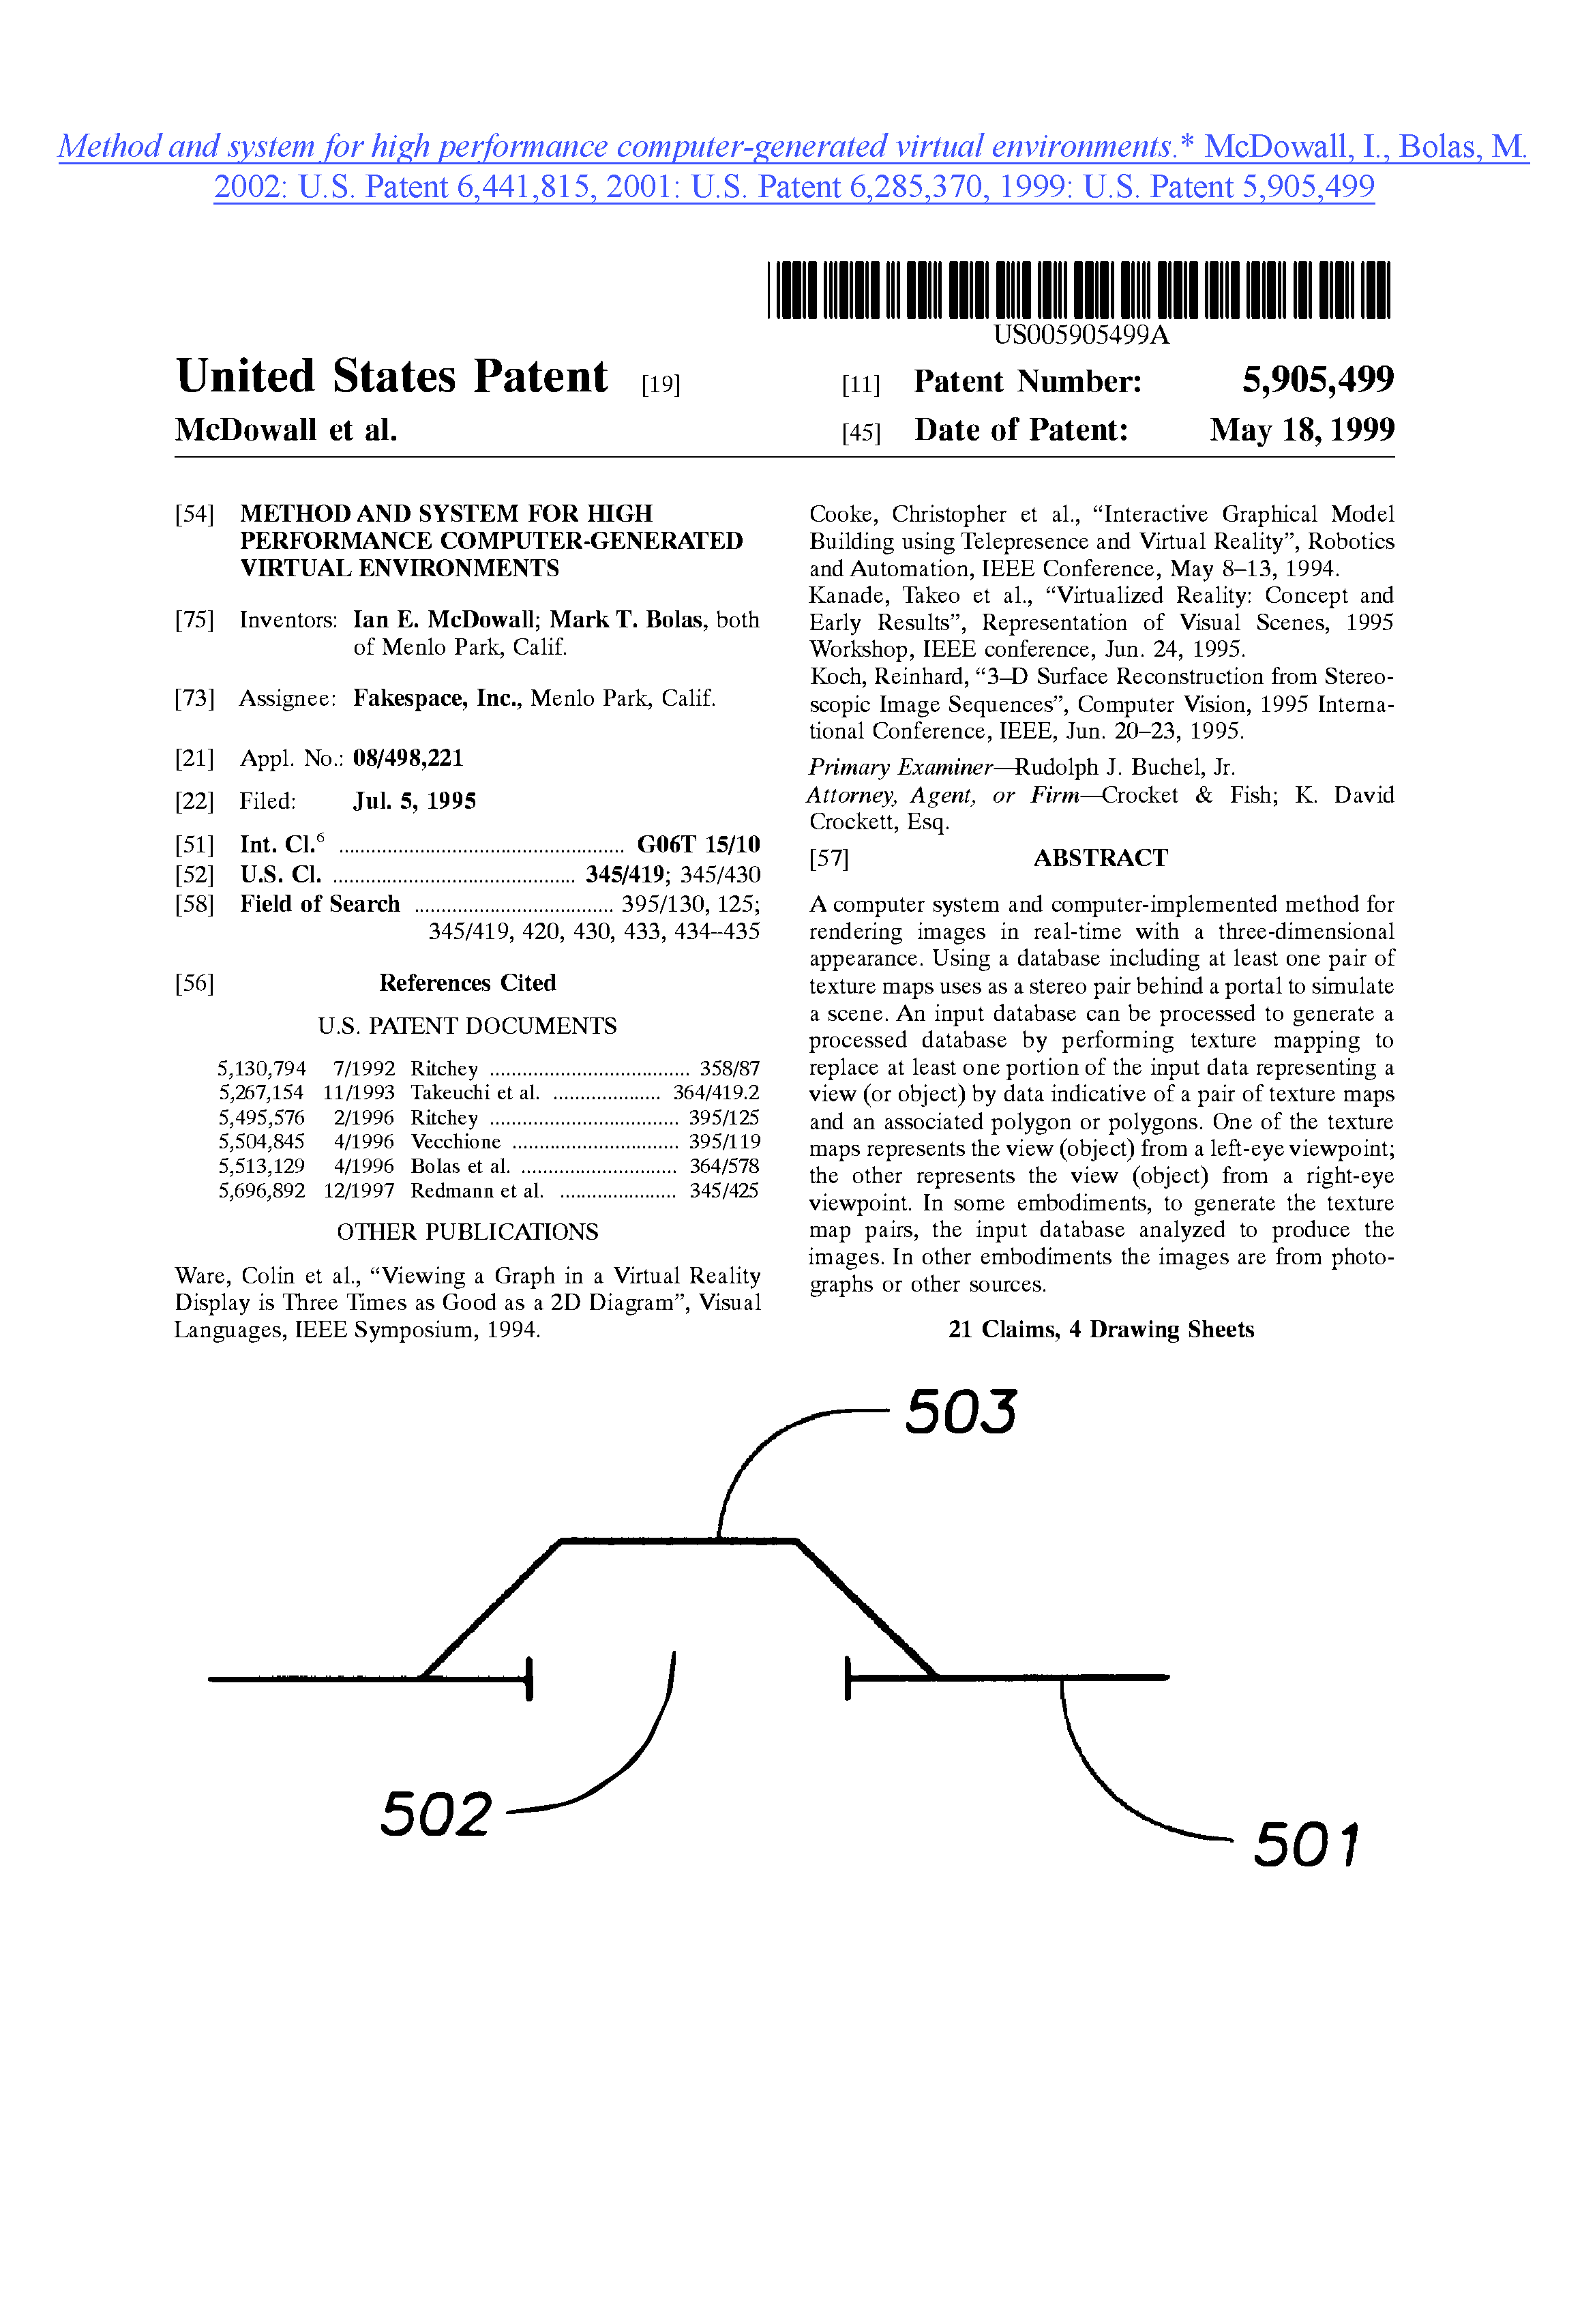 Method and system for high performance computer-generated virtual environments.5905499_TOP SHEET.png